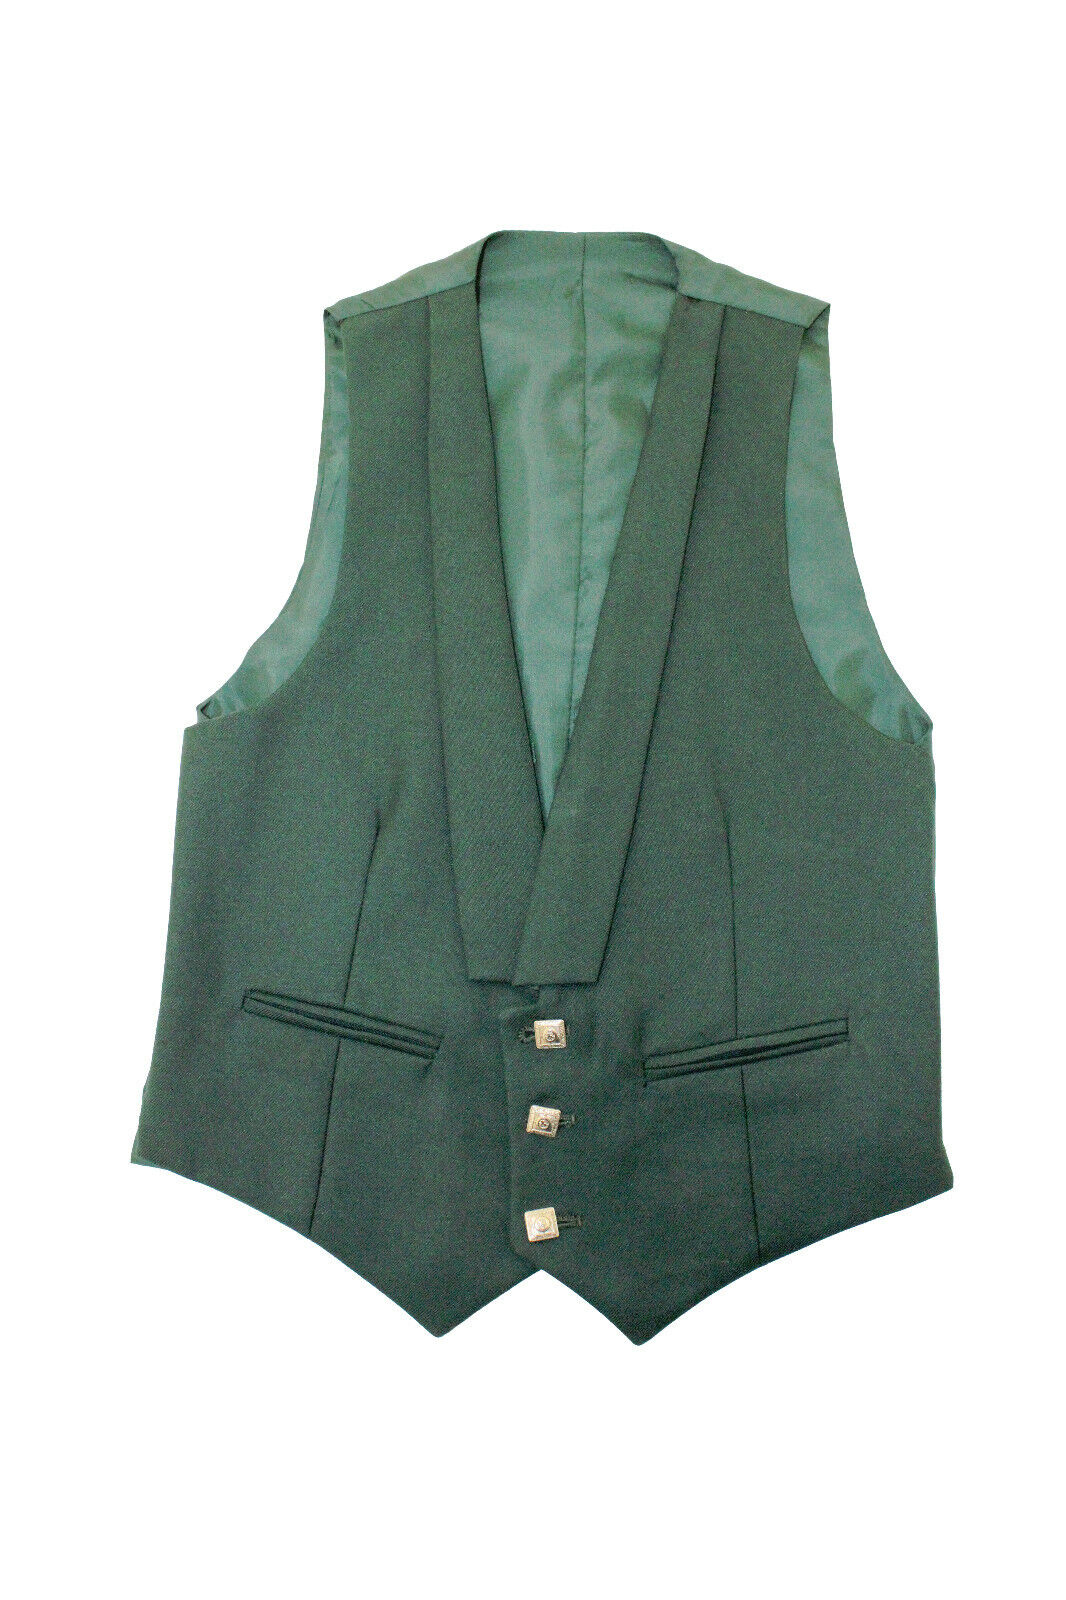 EXHIRE Green Prince Charlie Vest - reduced to clear - size 34